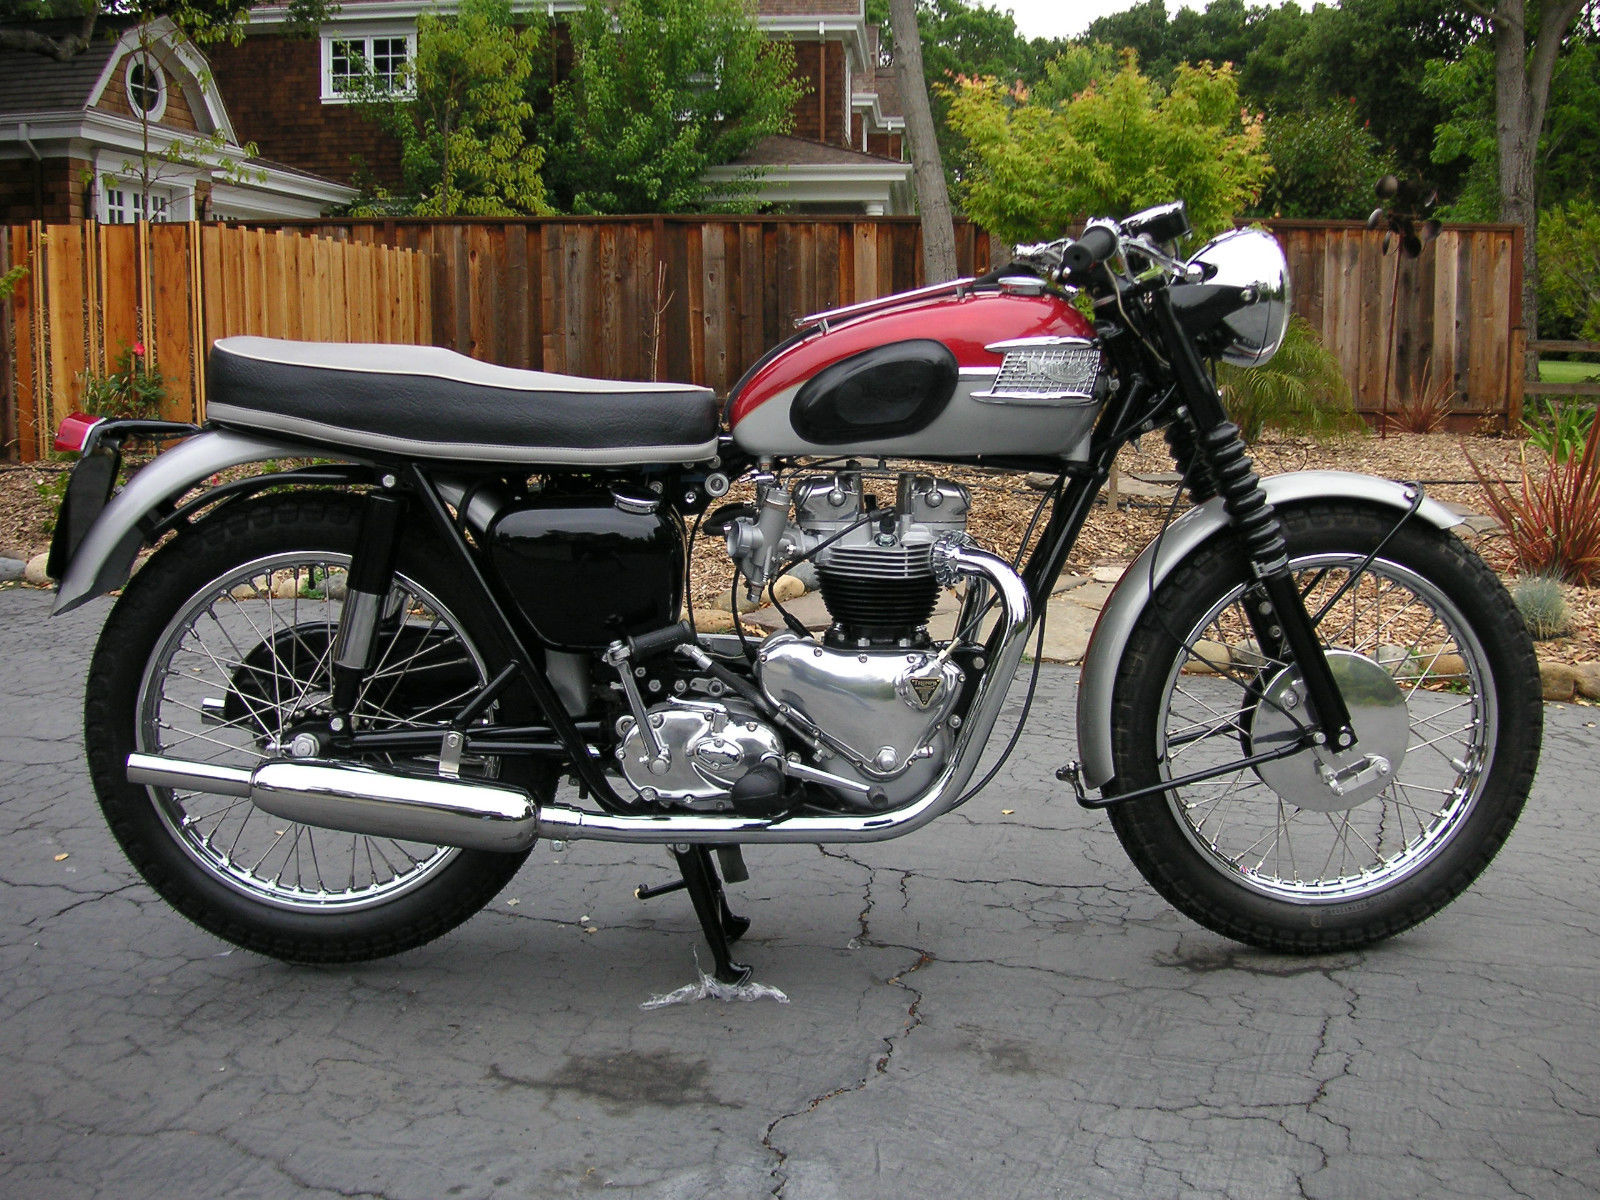 Triumph Bonneville 1962 Restored Classic Motorcycles At Bikes Wiring Harness For 1971 Motorcycle